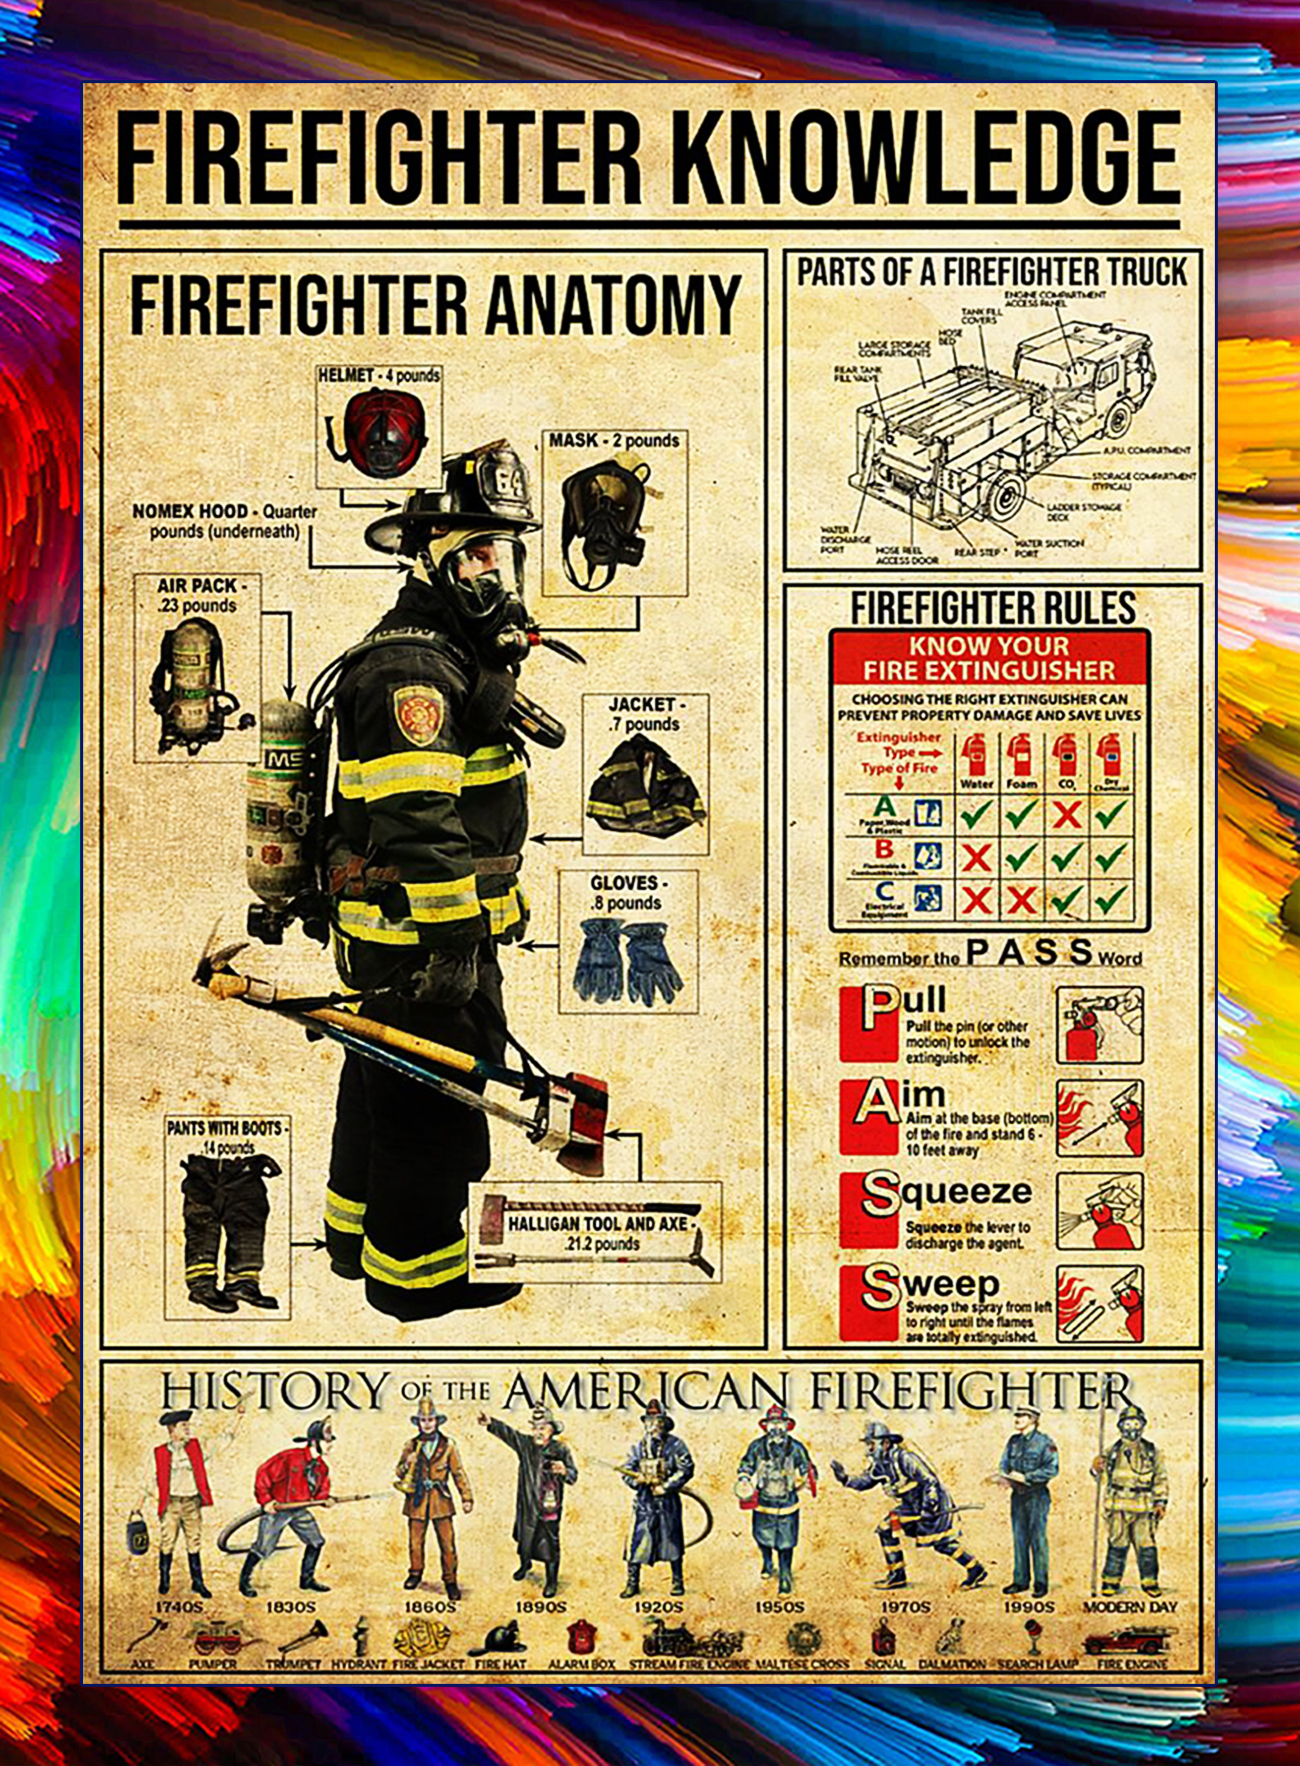 Firefighter knowledge poster - A1